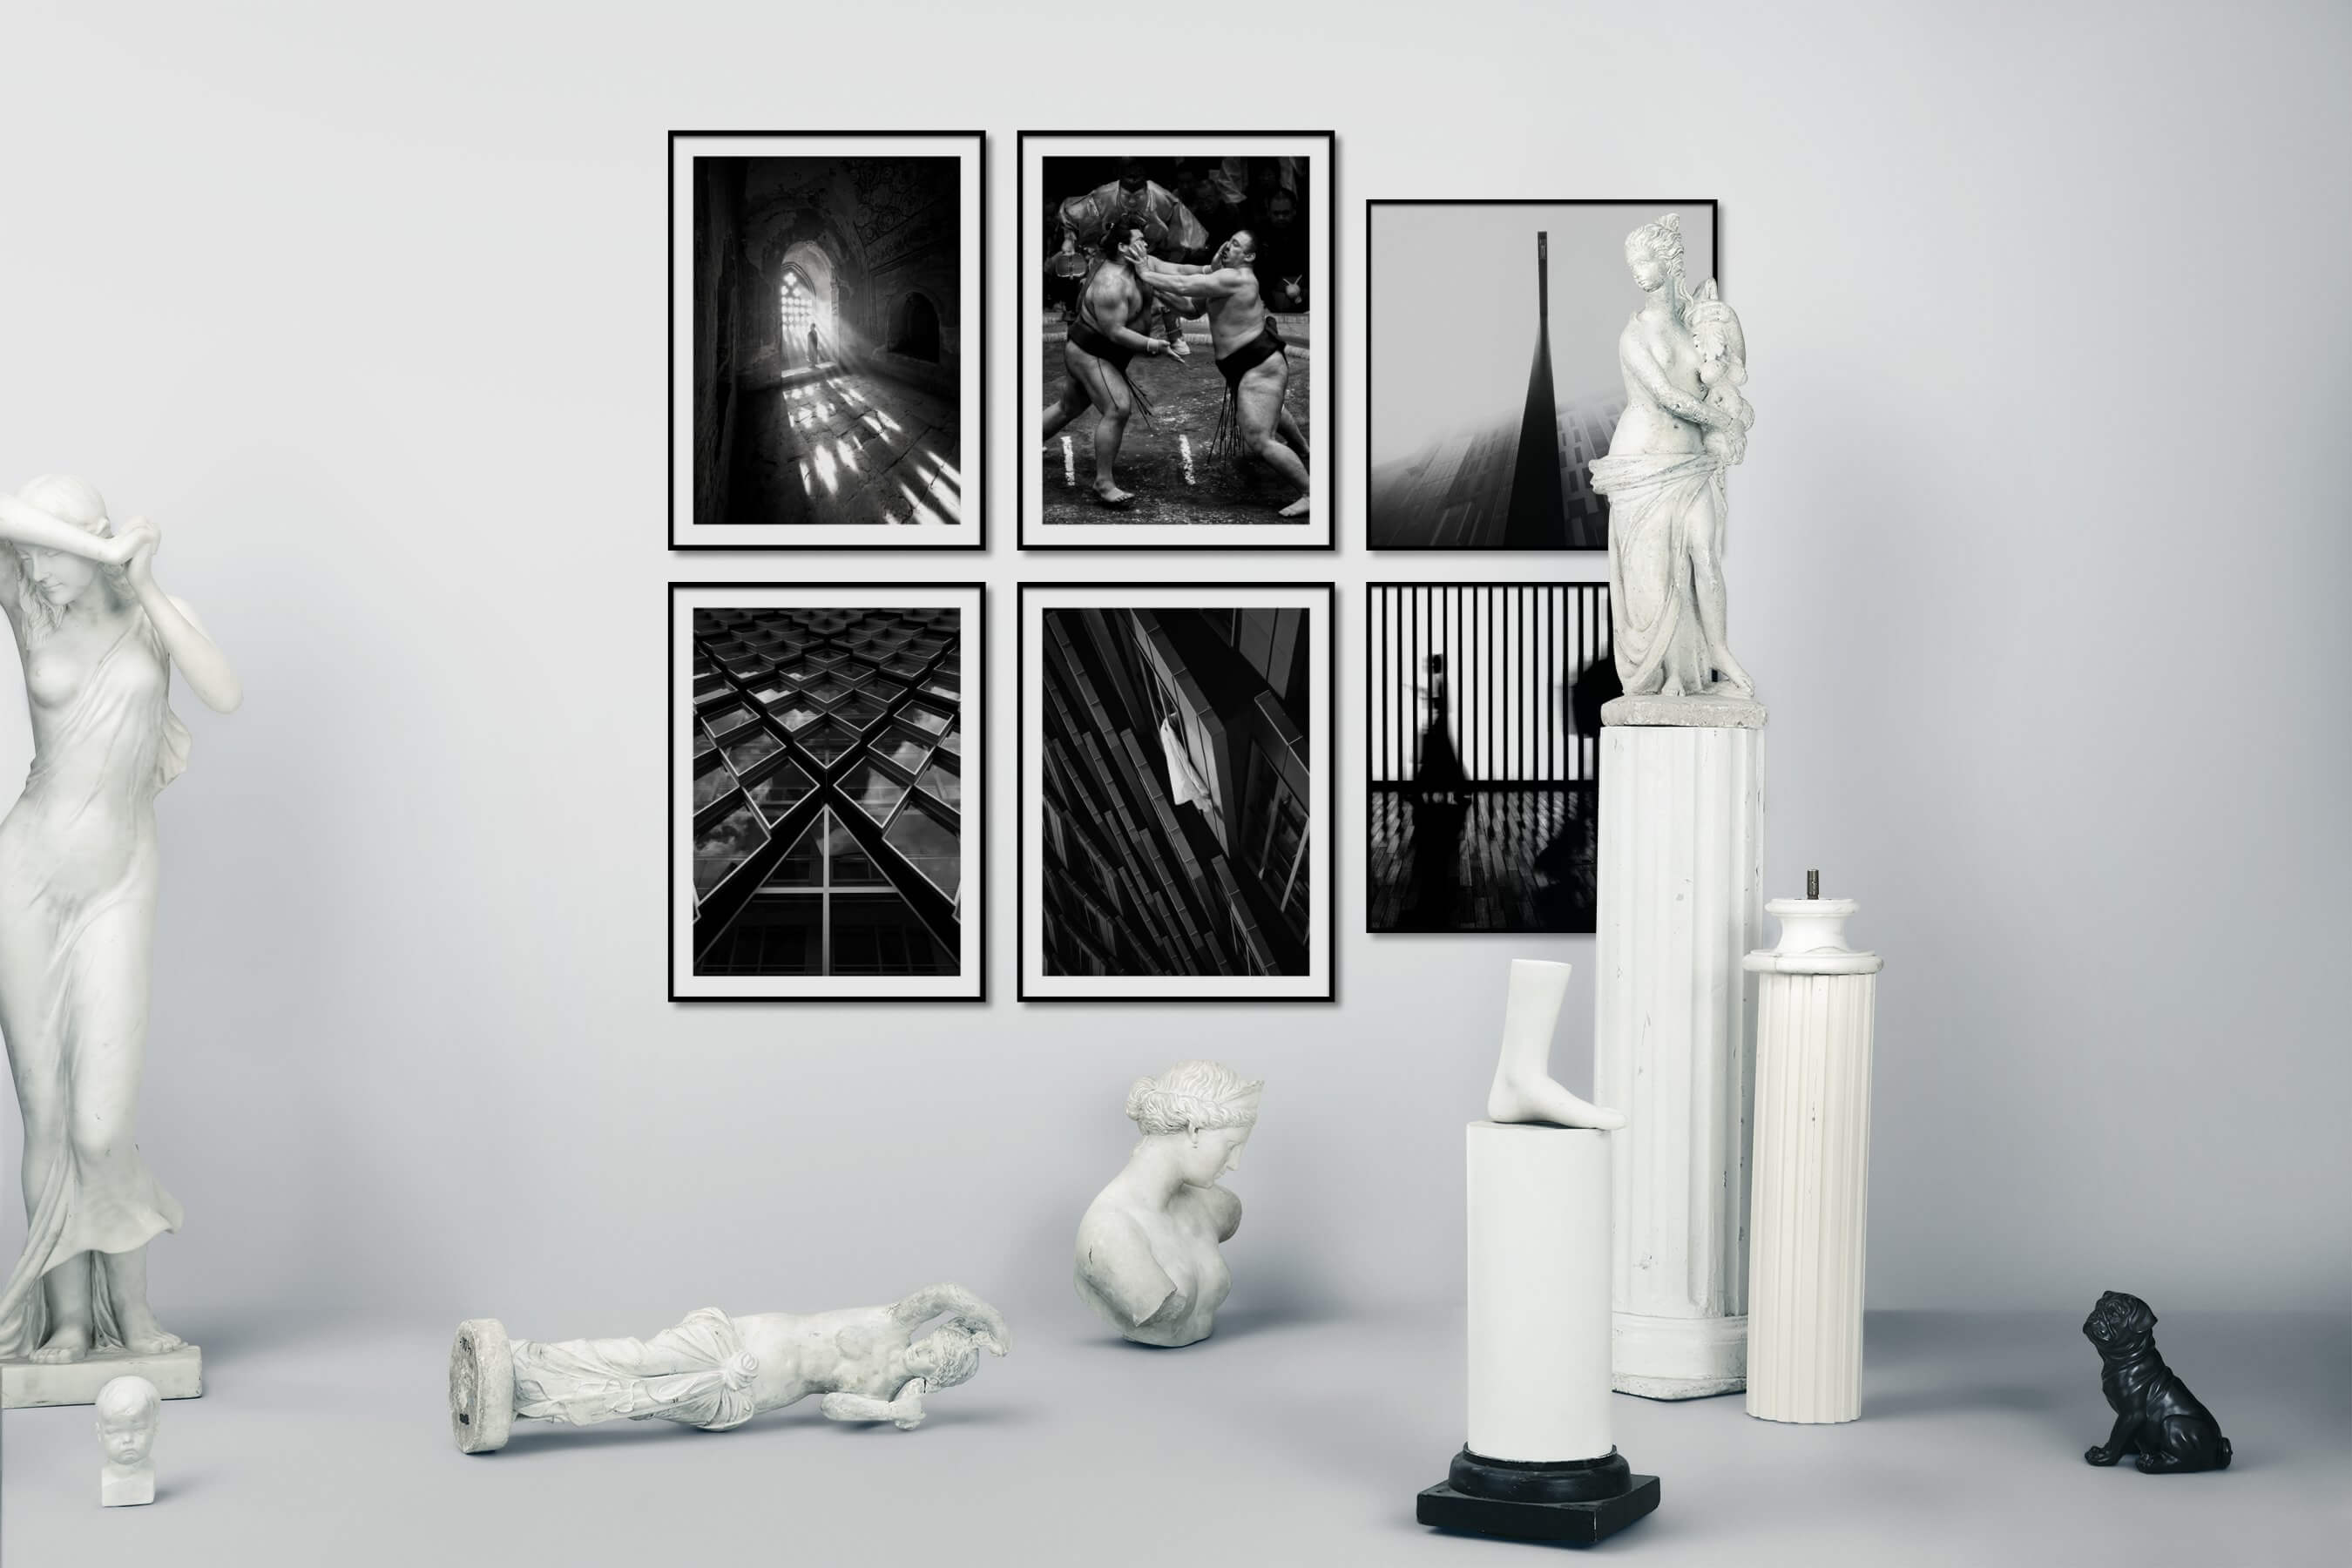 Gallery wall idea with six framed pictures arranged on a wall depicting Black & White, Mindfulness, For the Maximalist, For the Moderate, For the Minimalist, and City Life